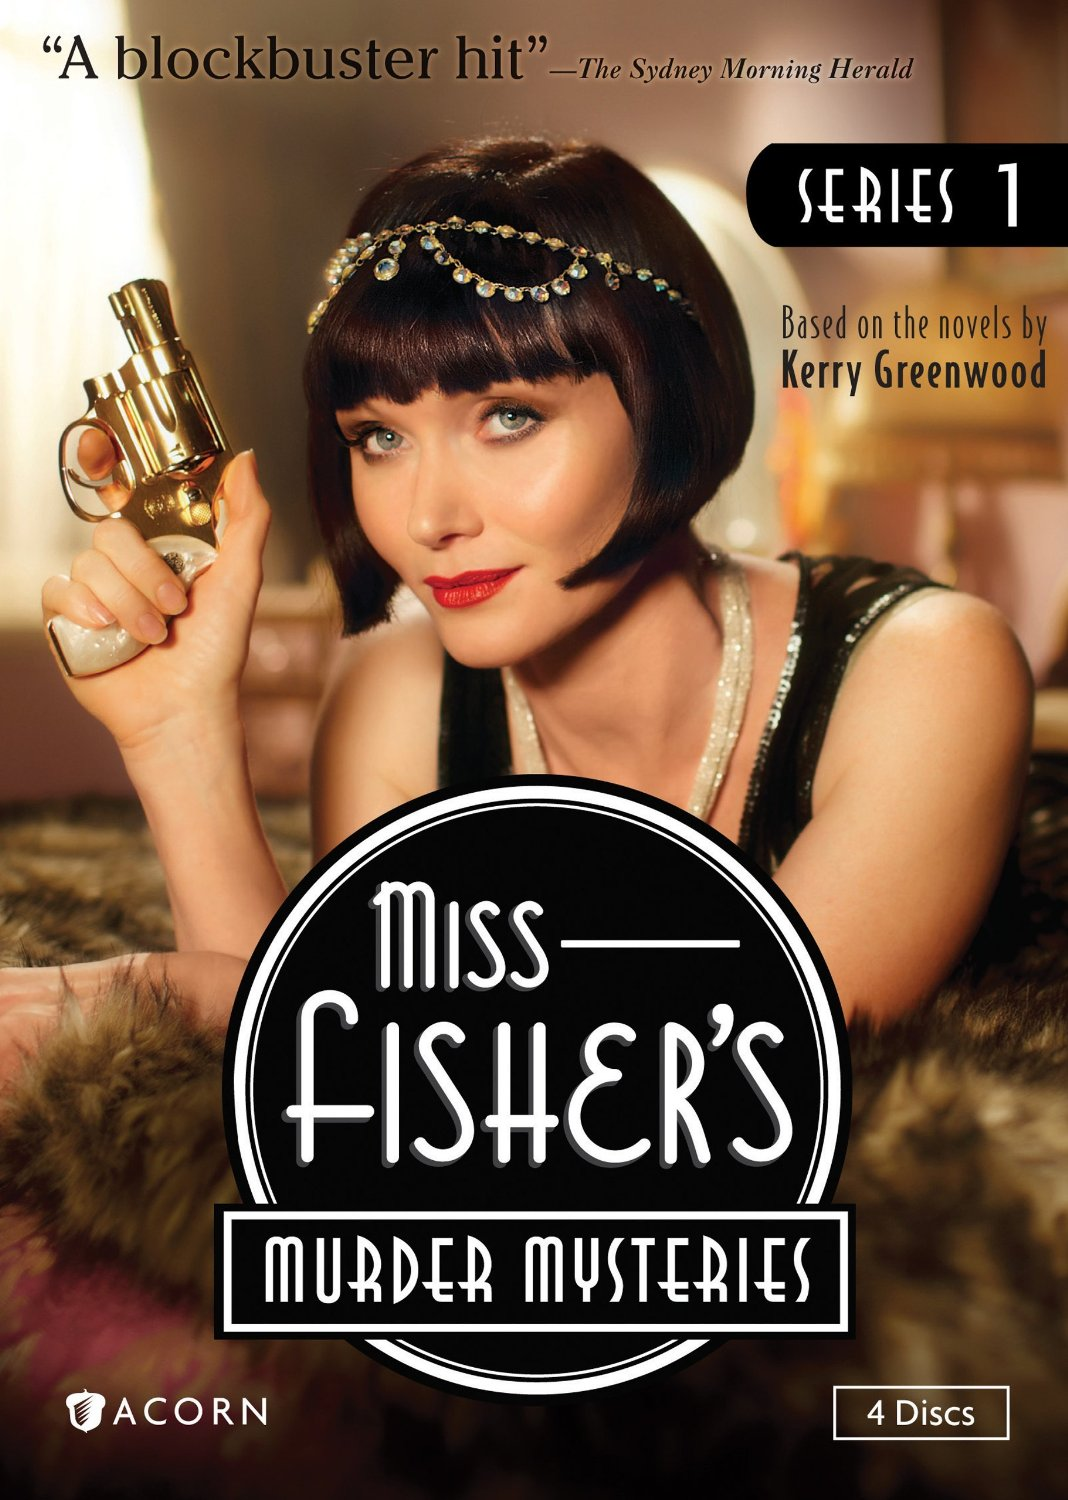 Miss Fisher's Murder Mysteries - ABC1